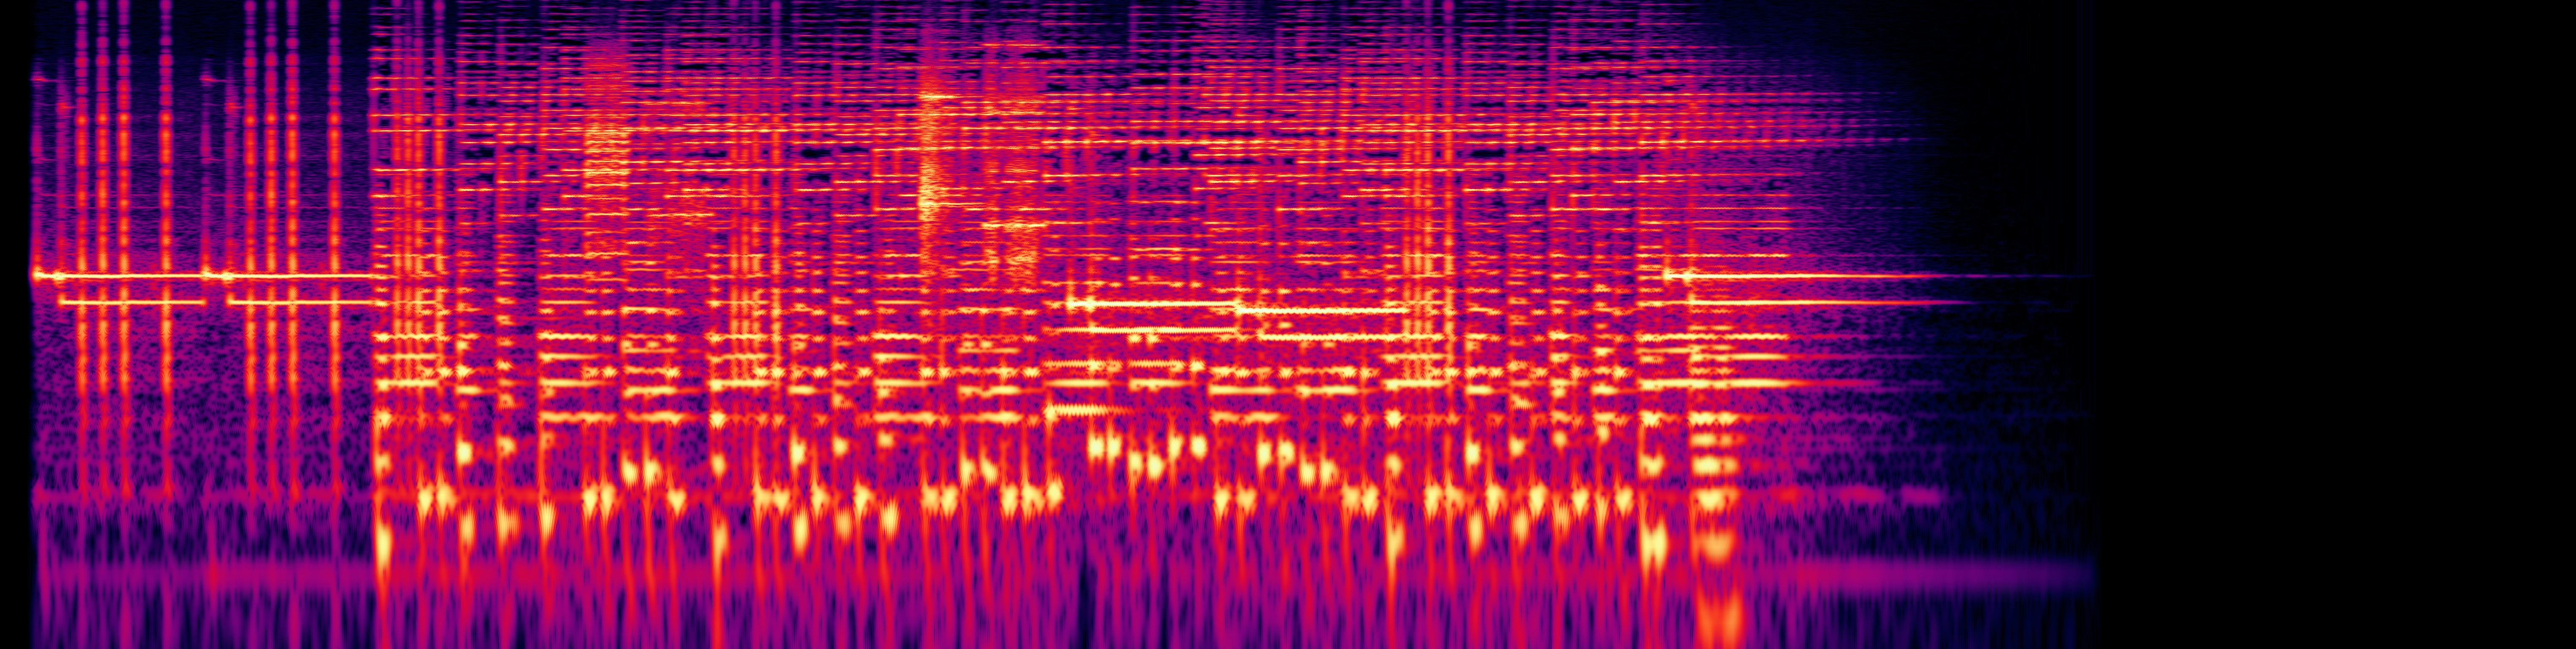 Door To Door - Spectrogram.jpg